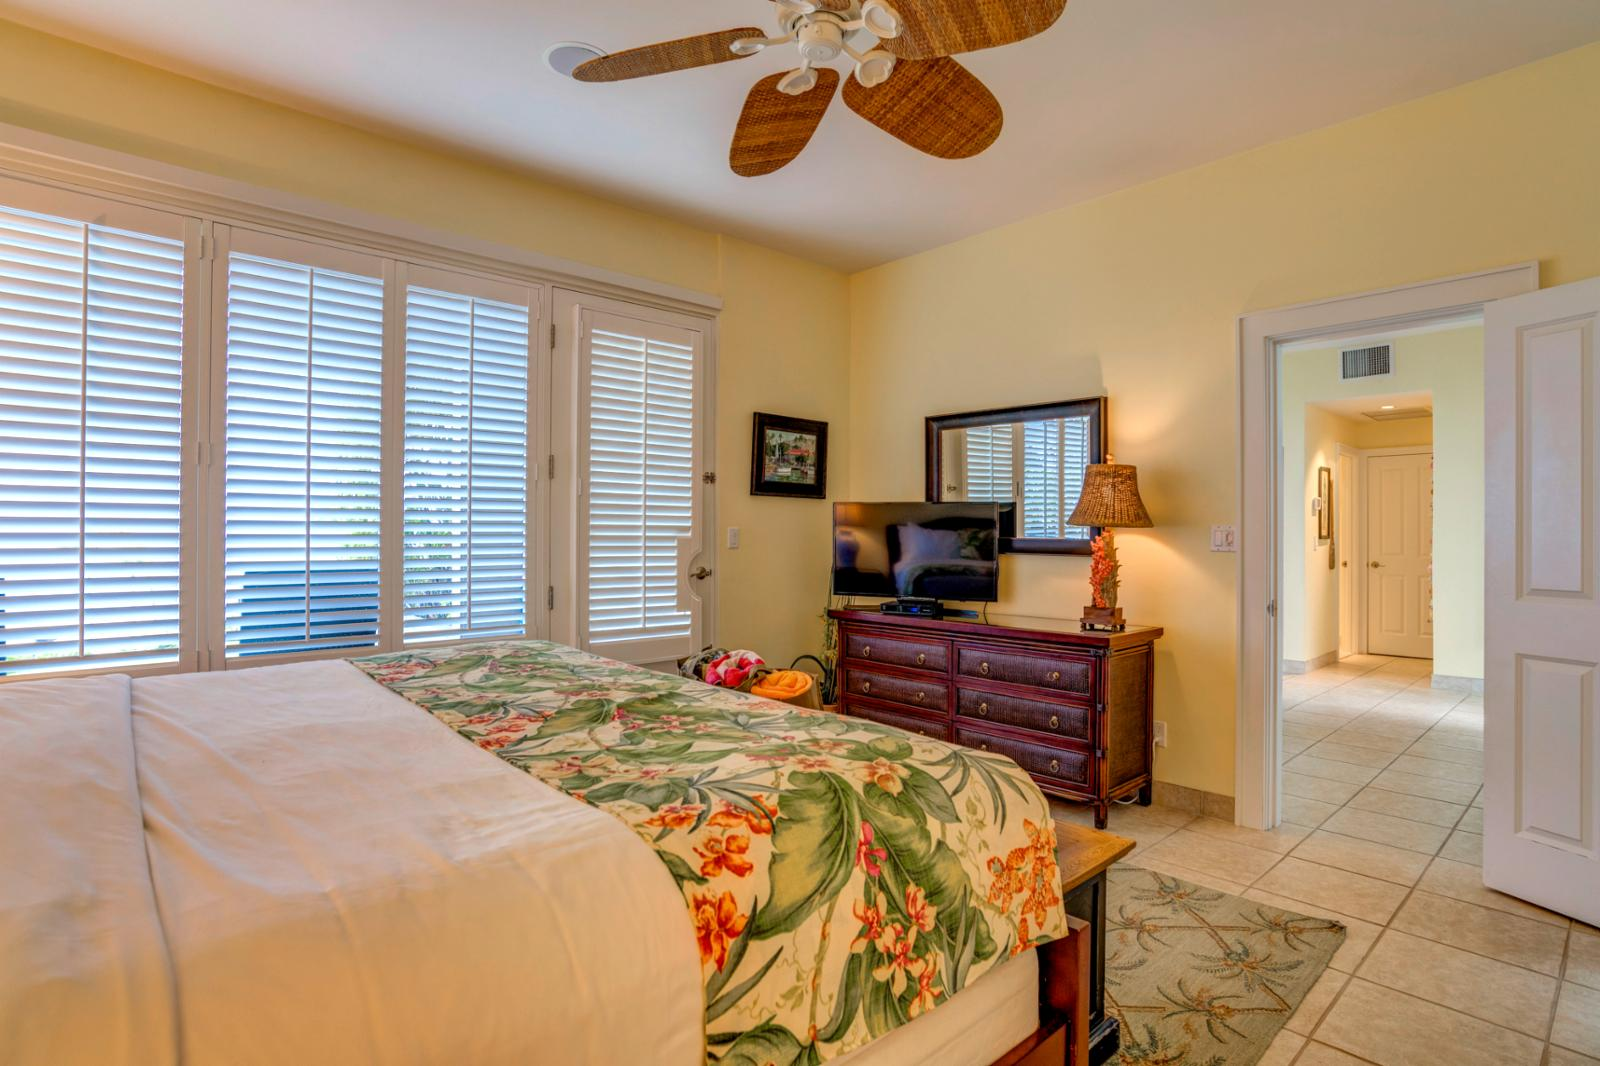 Master suite, new furnishings, equipped with ceiling fan, and large flat screen television